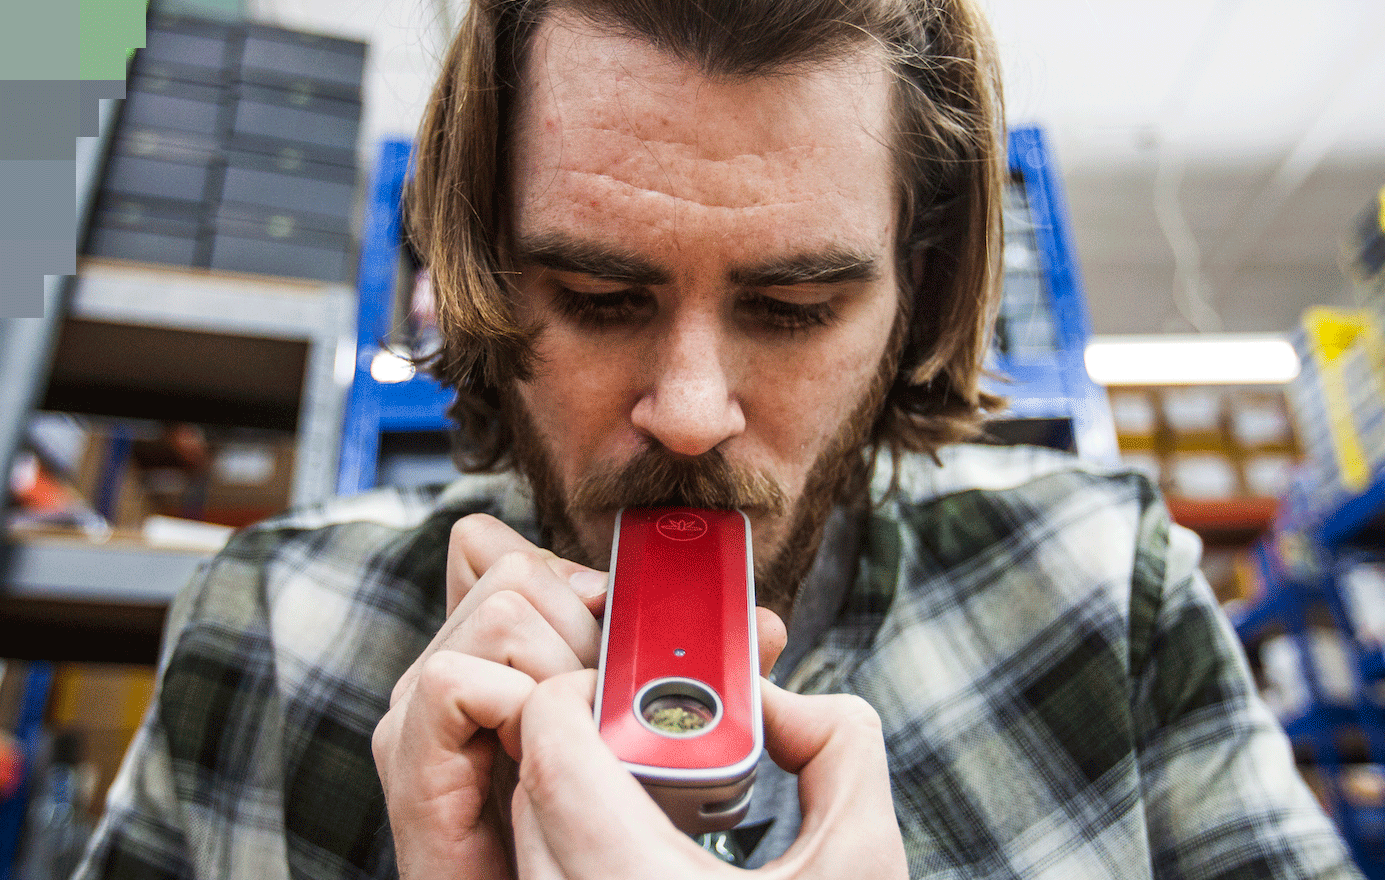 We Tested Some of the Best Weed Vapes On the Market - VICE